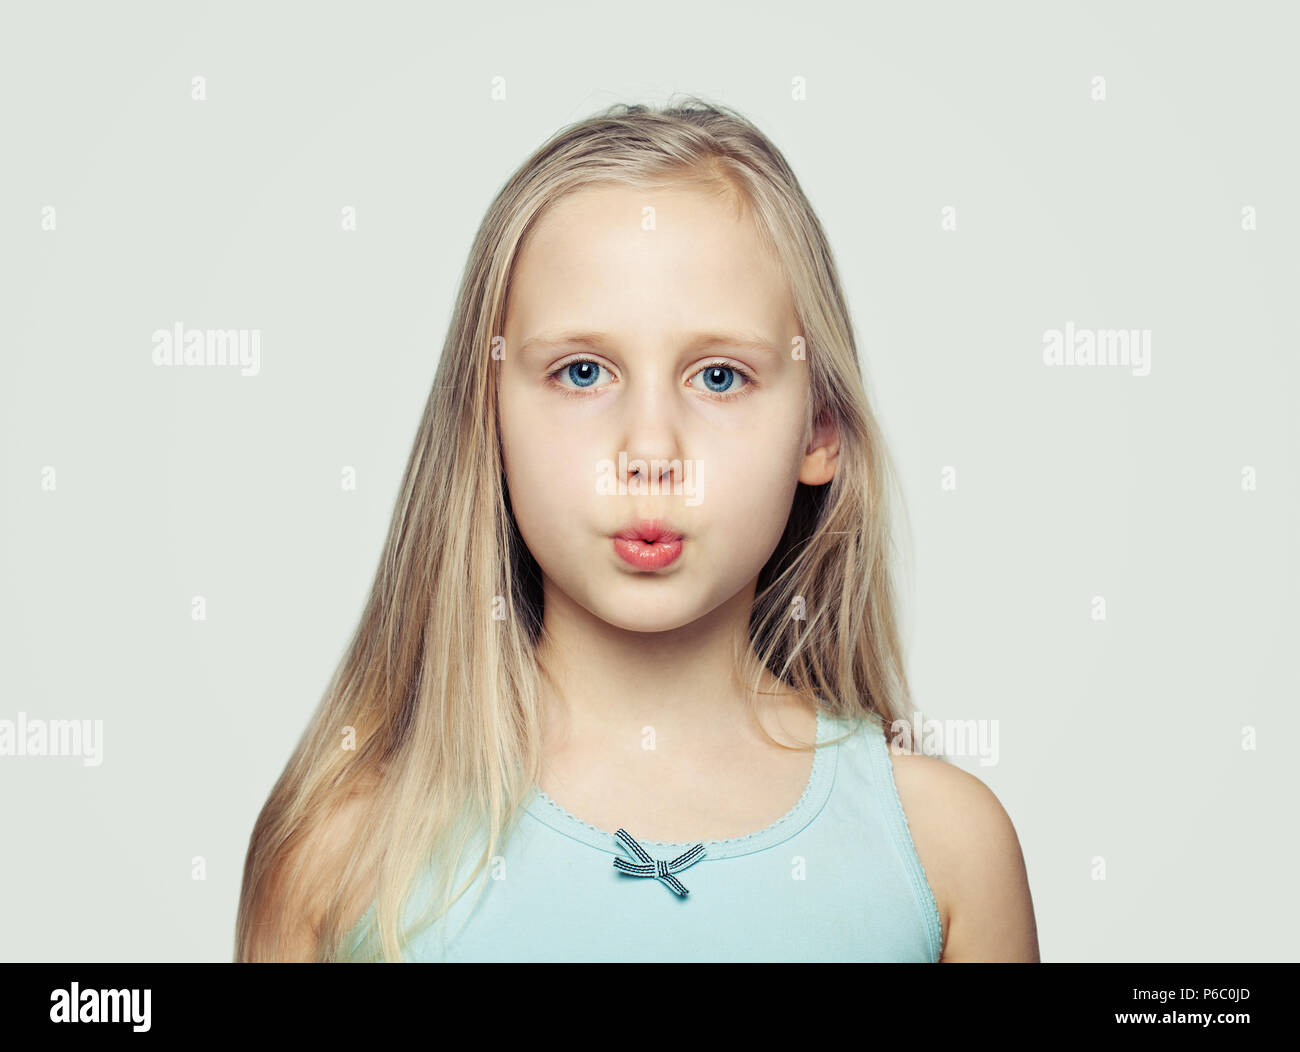 Funny face. Child girl grimacing - Stock Image